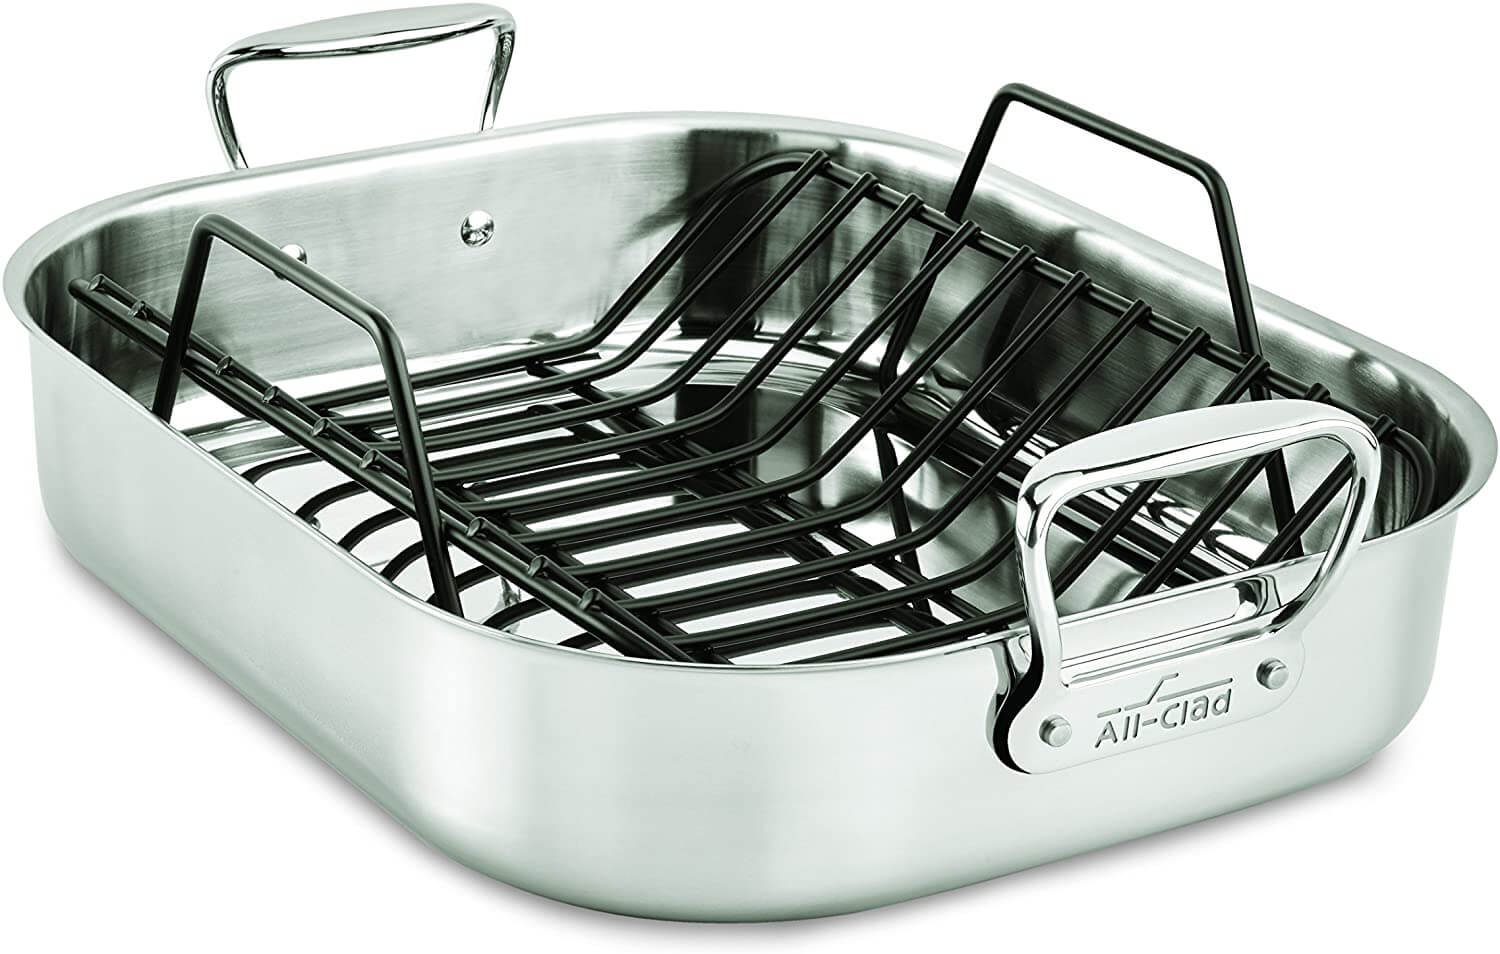 All-Clad E752C264 Stainless Steel Roaster with Nonstick Rack